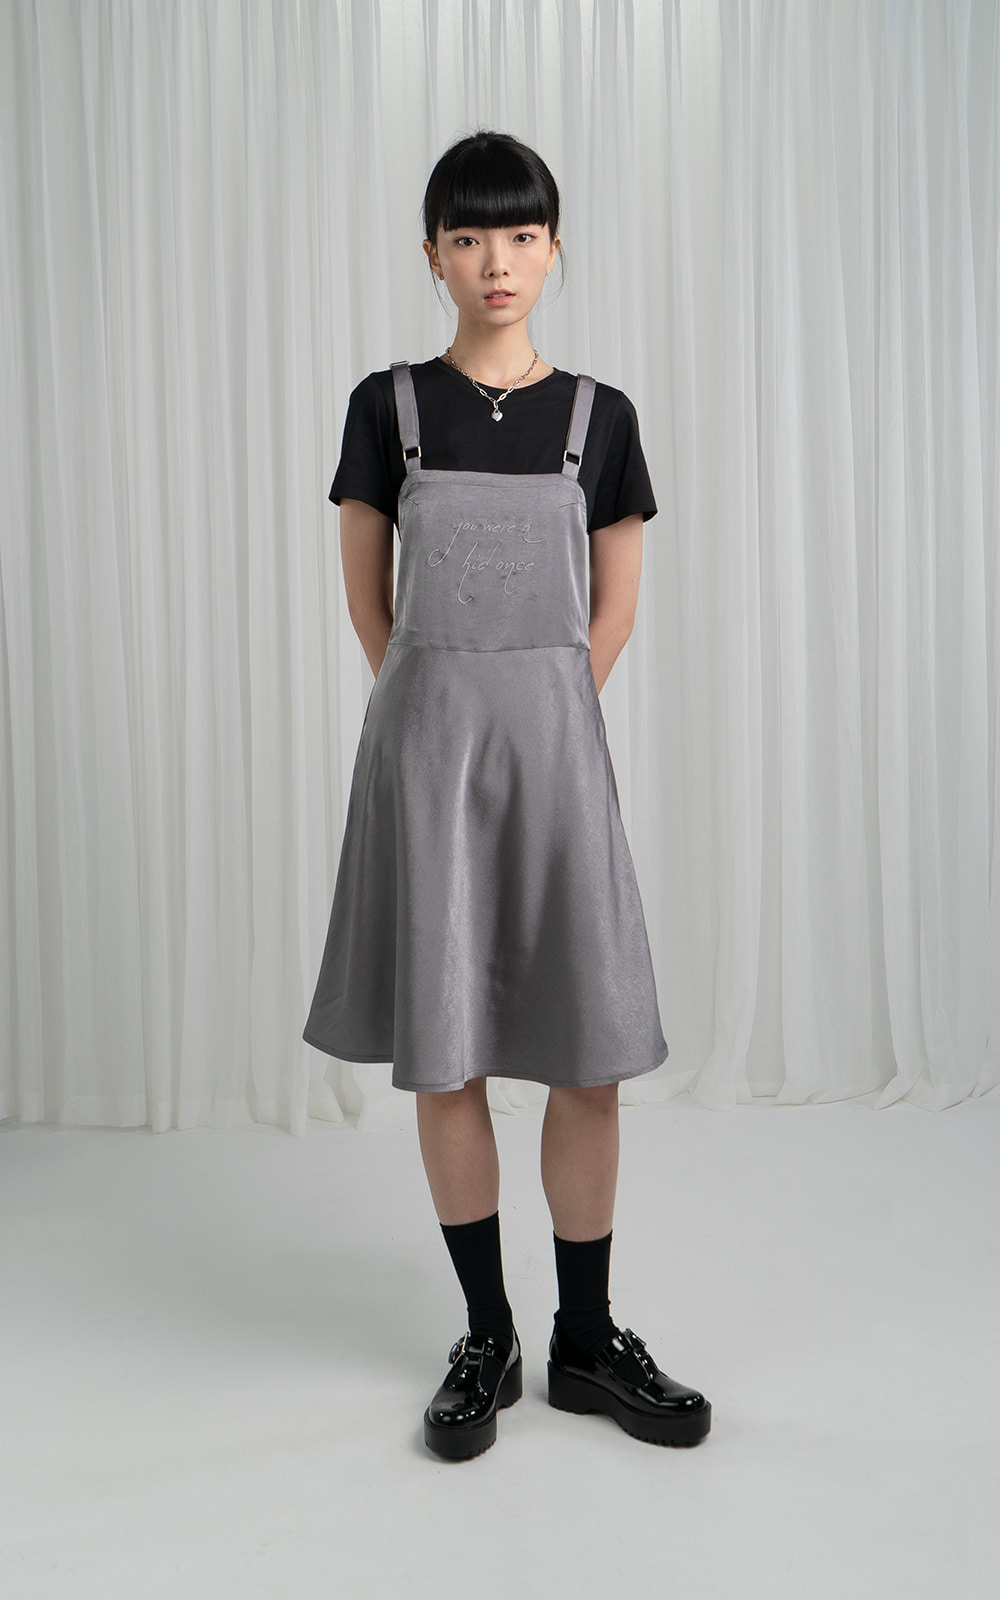 오디지 온라인 스토어SLEEVELESS SATIN DRESSOwn label brand